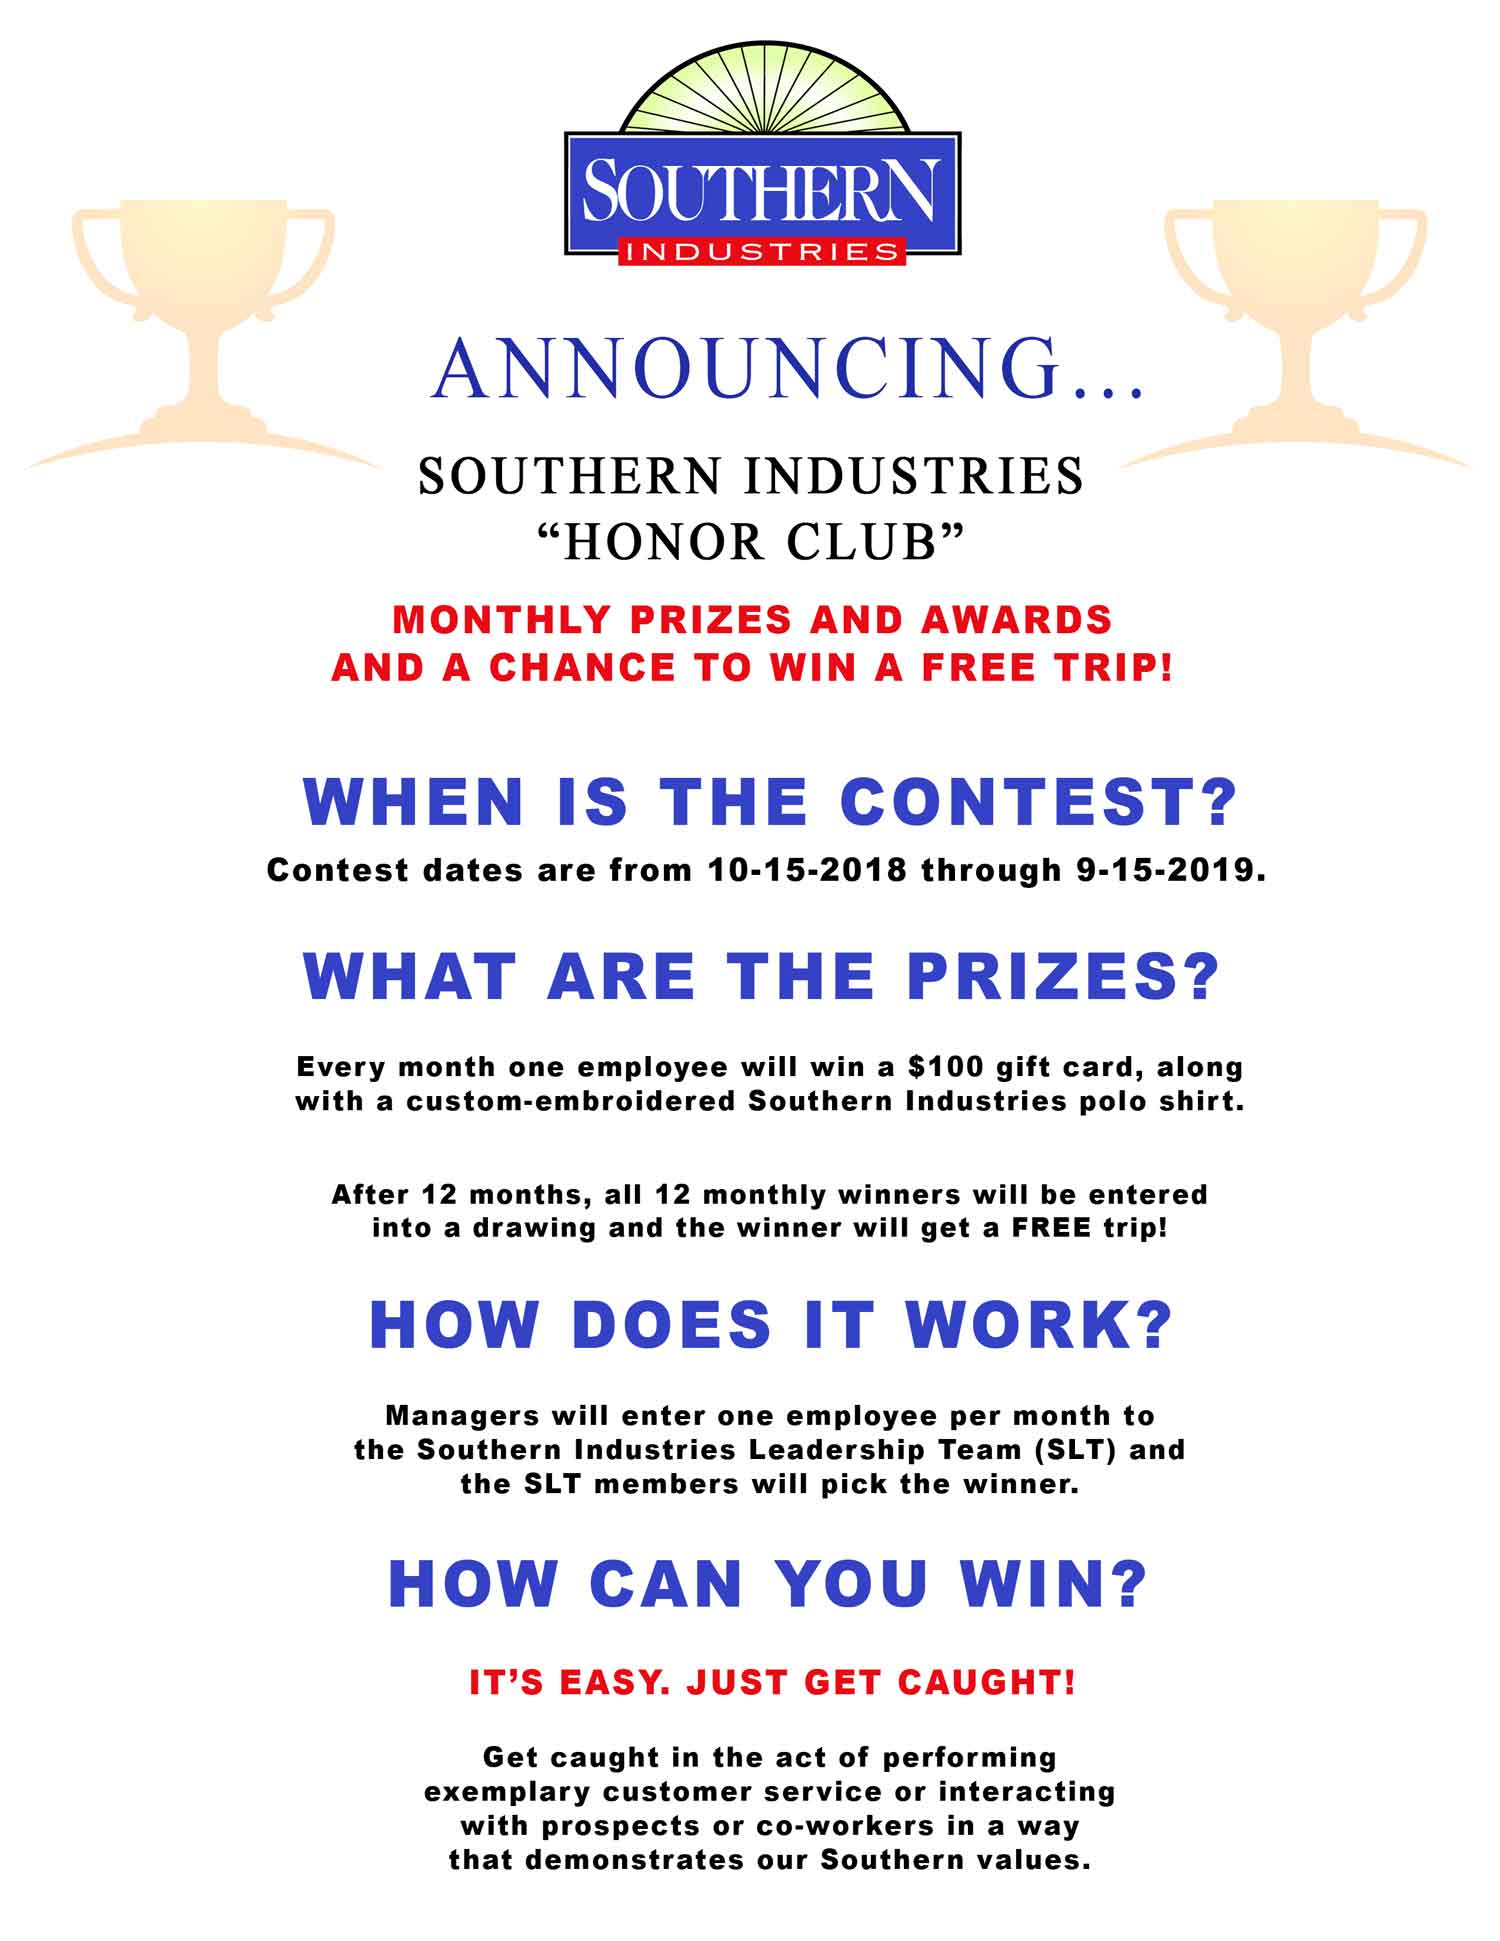 Rewards Why Southern